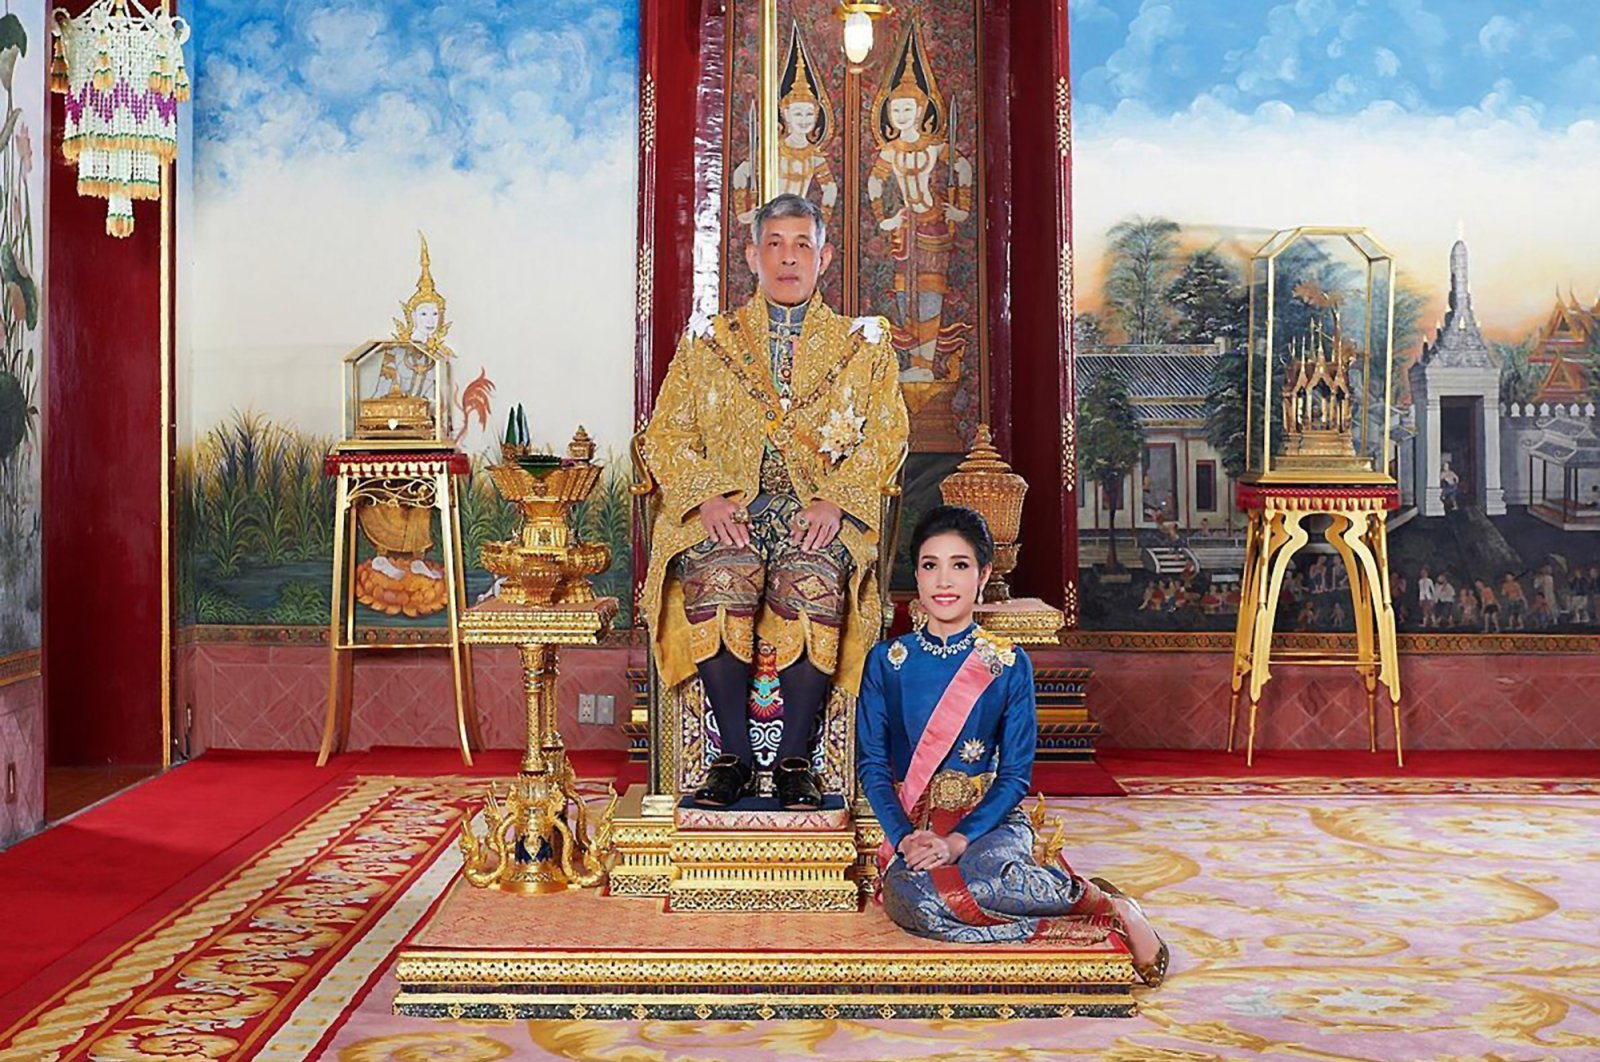 This undated file photo posted on Aug. 26, 2019, on the Thailand Royal Office website shows King Maha Vajiralongkorn with Major General Sineenatra Wongvajirabhakdi, the royal noble consort. (Thailand Royal Office Photo via AP)